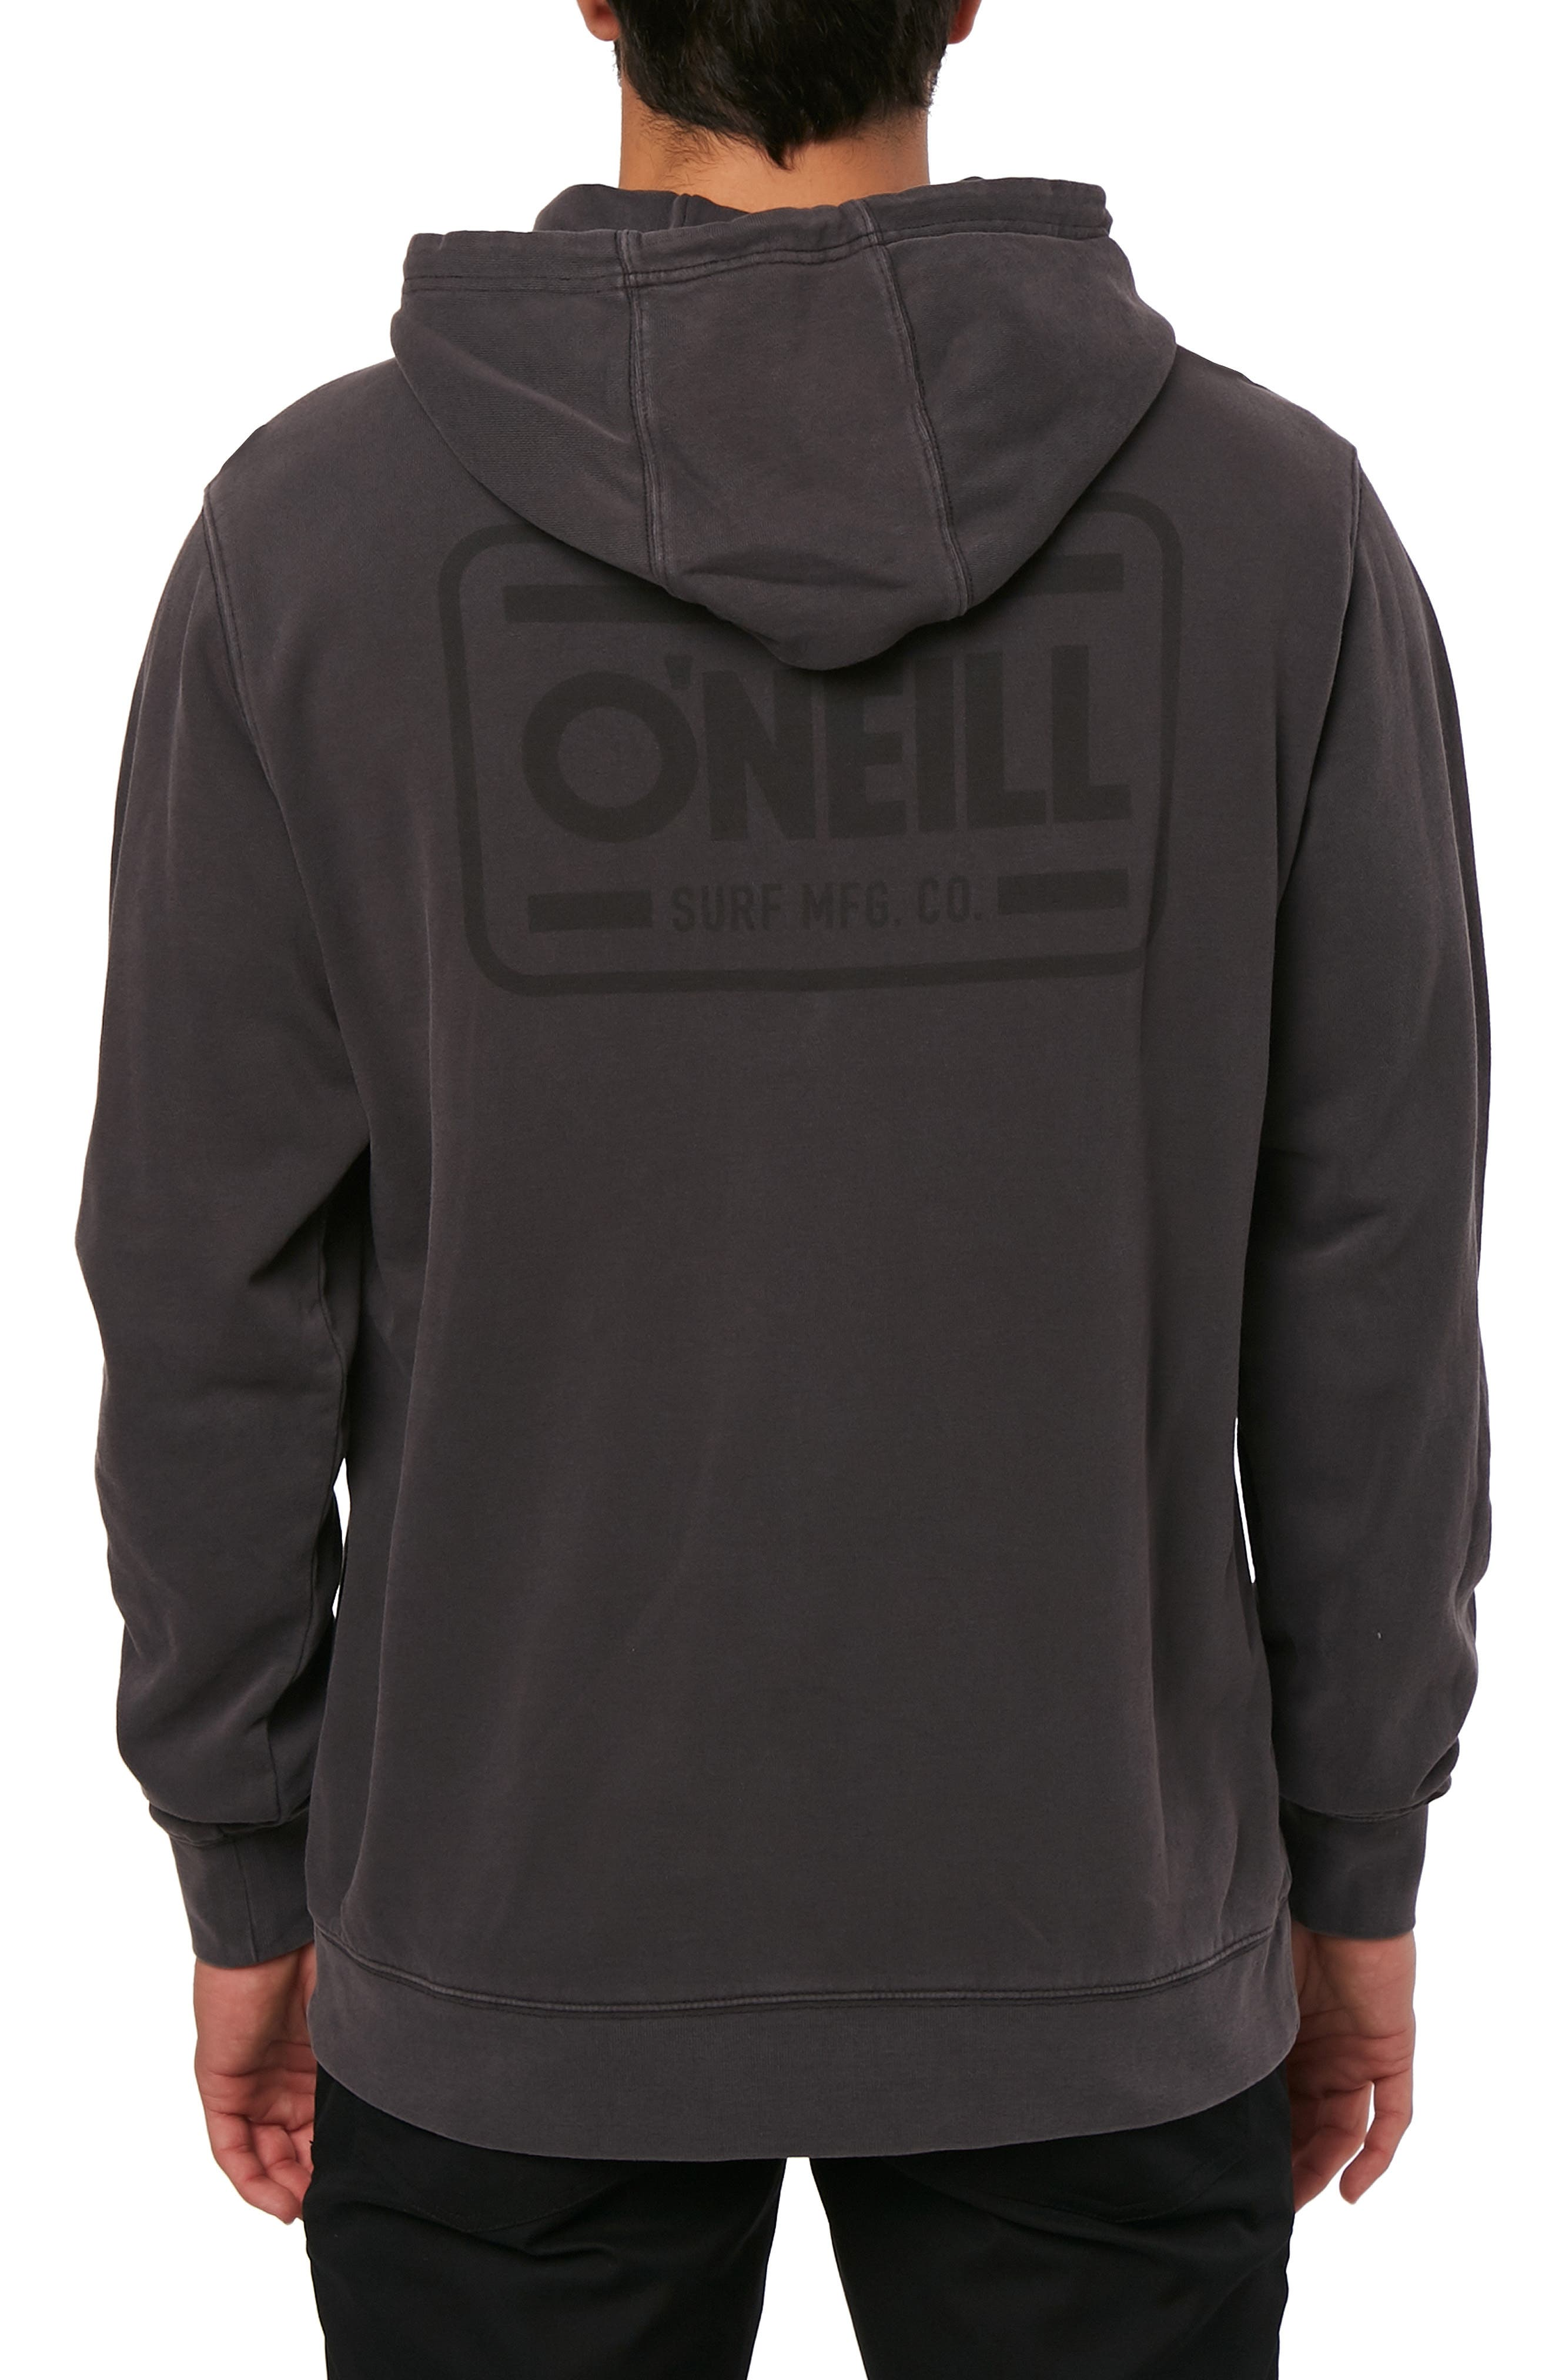 Oceans Hooded Sweatshirt,                             Alternate thumbnail 2, color,                             001